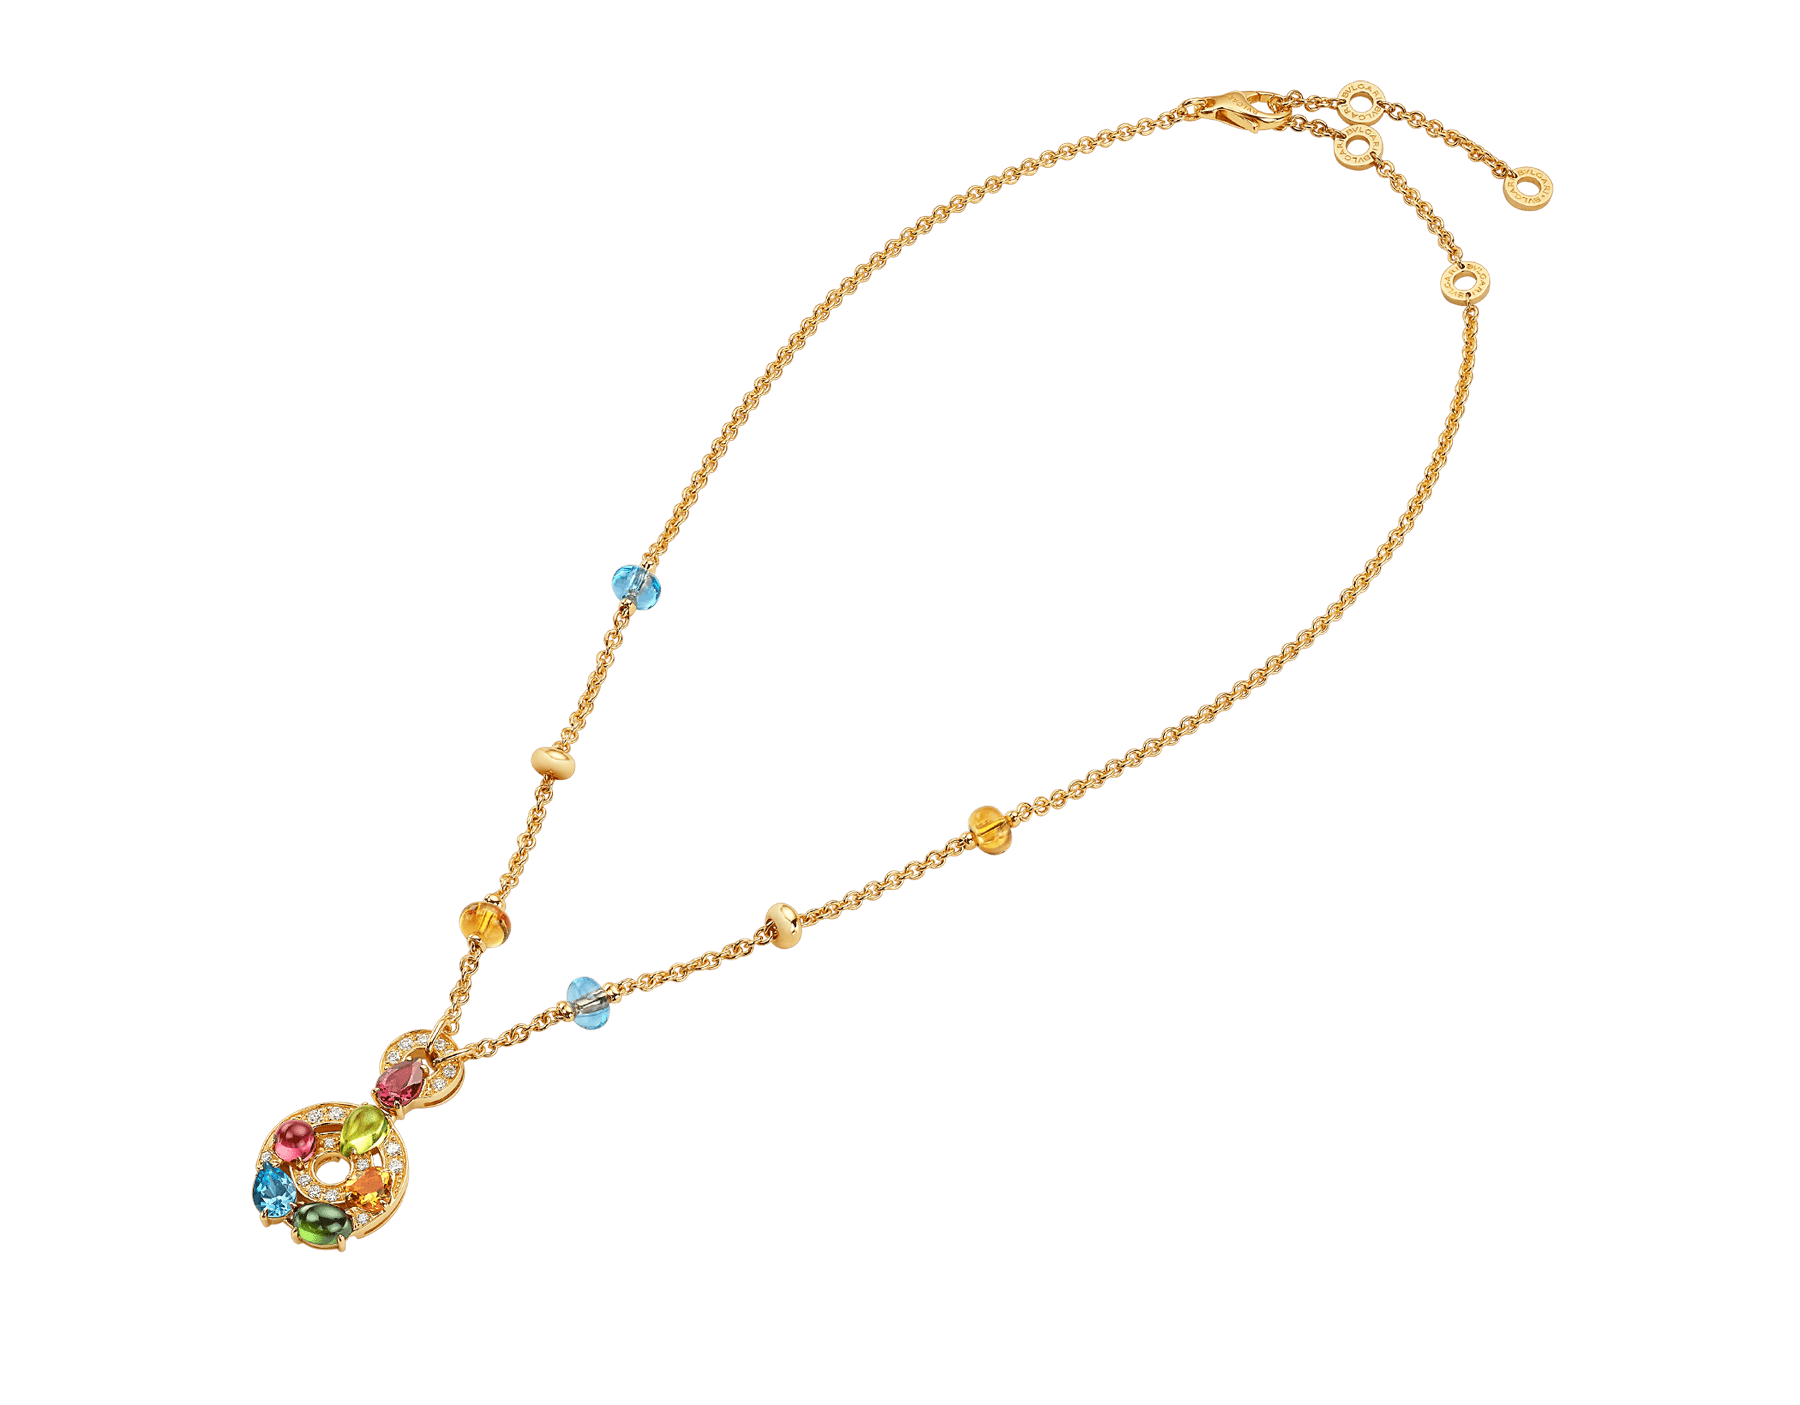 Astrale 18 kt yellow gold large pendant necklace set with blue topazes, amethysts, green tourmalines, peridots, citrine quartz, rhodolite garnets and pavé diamonds 339139 image 3